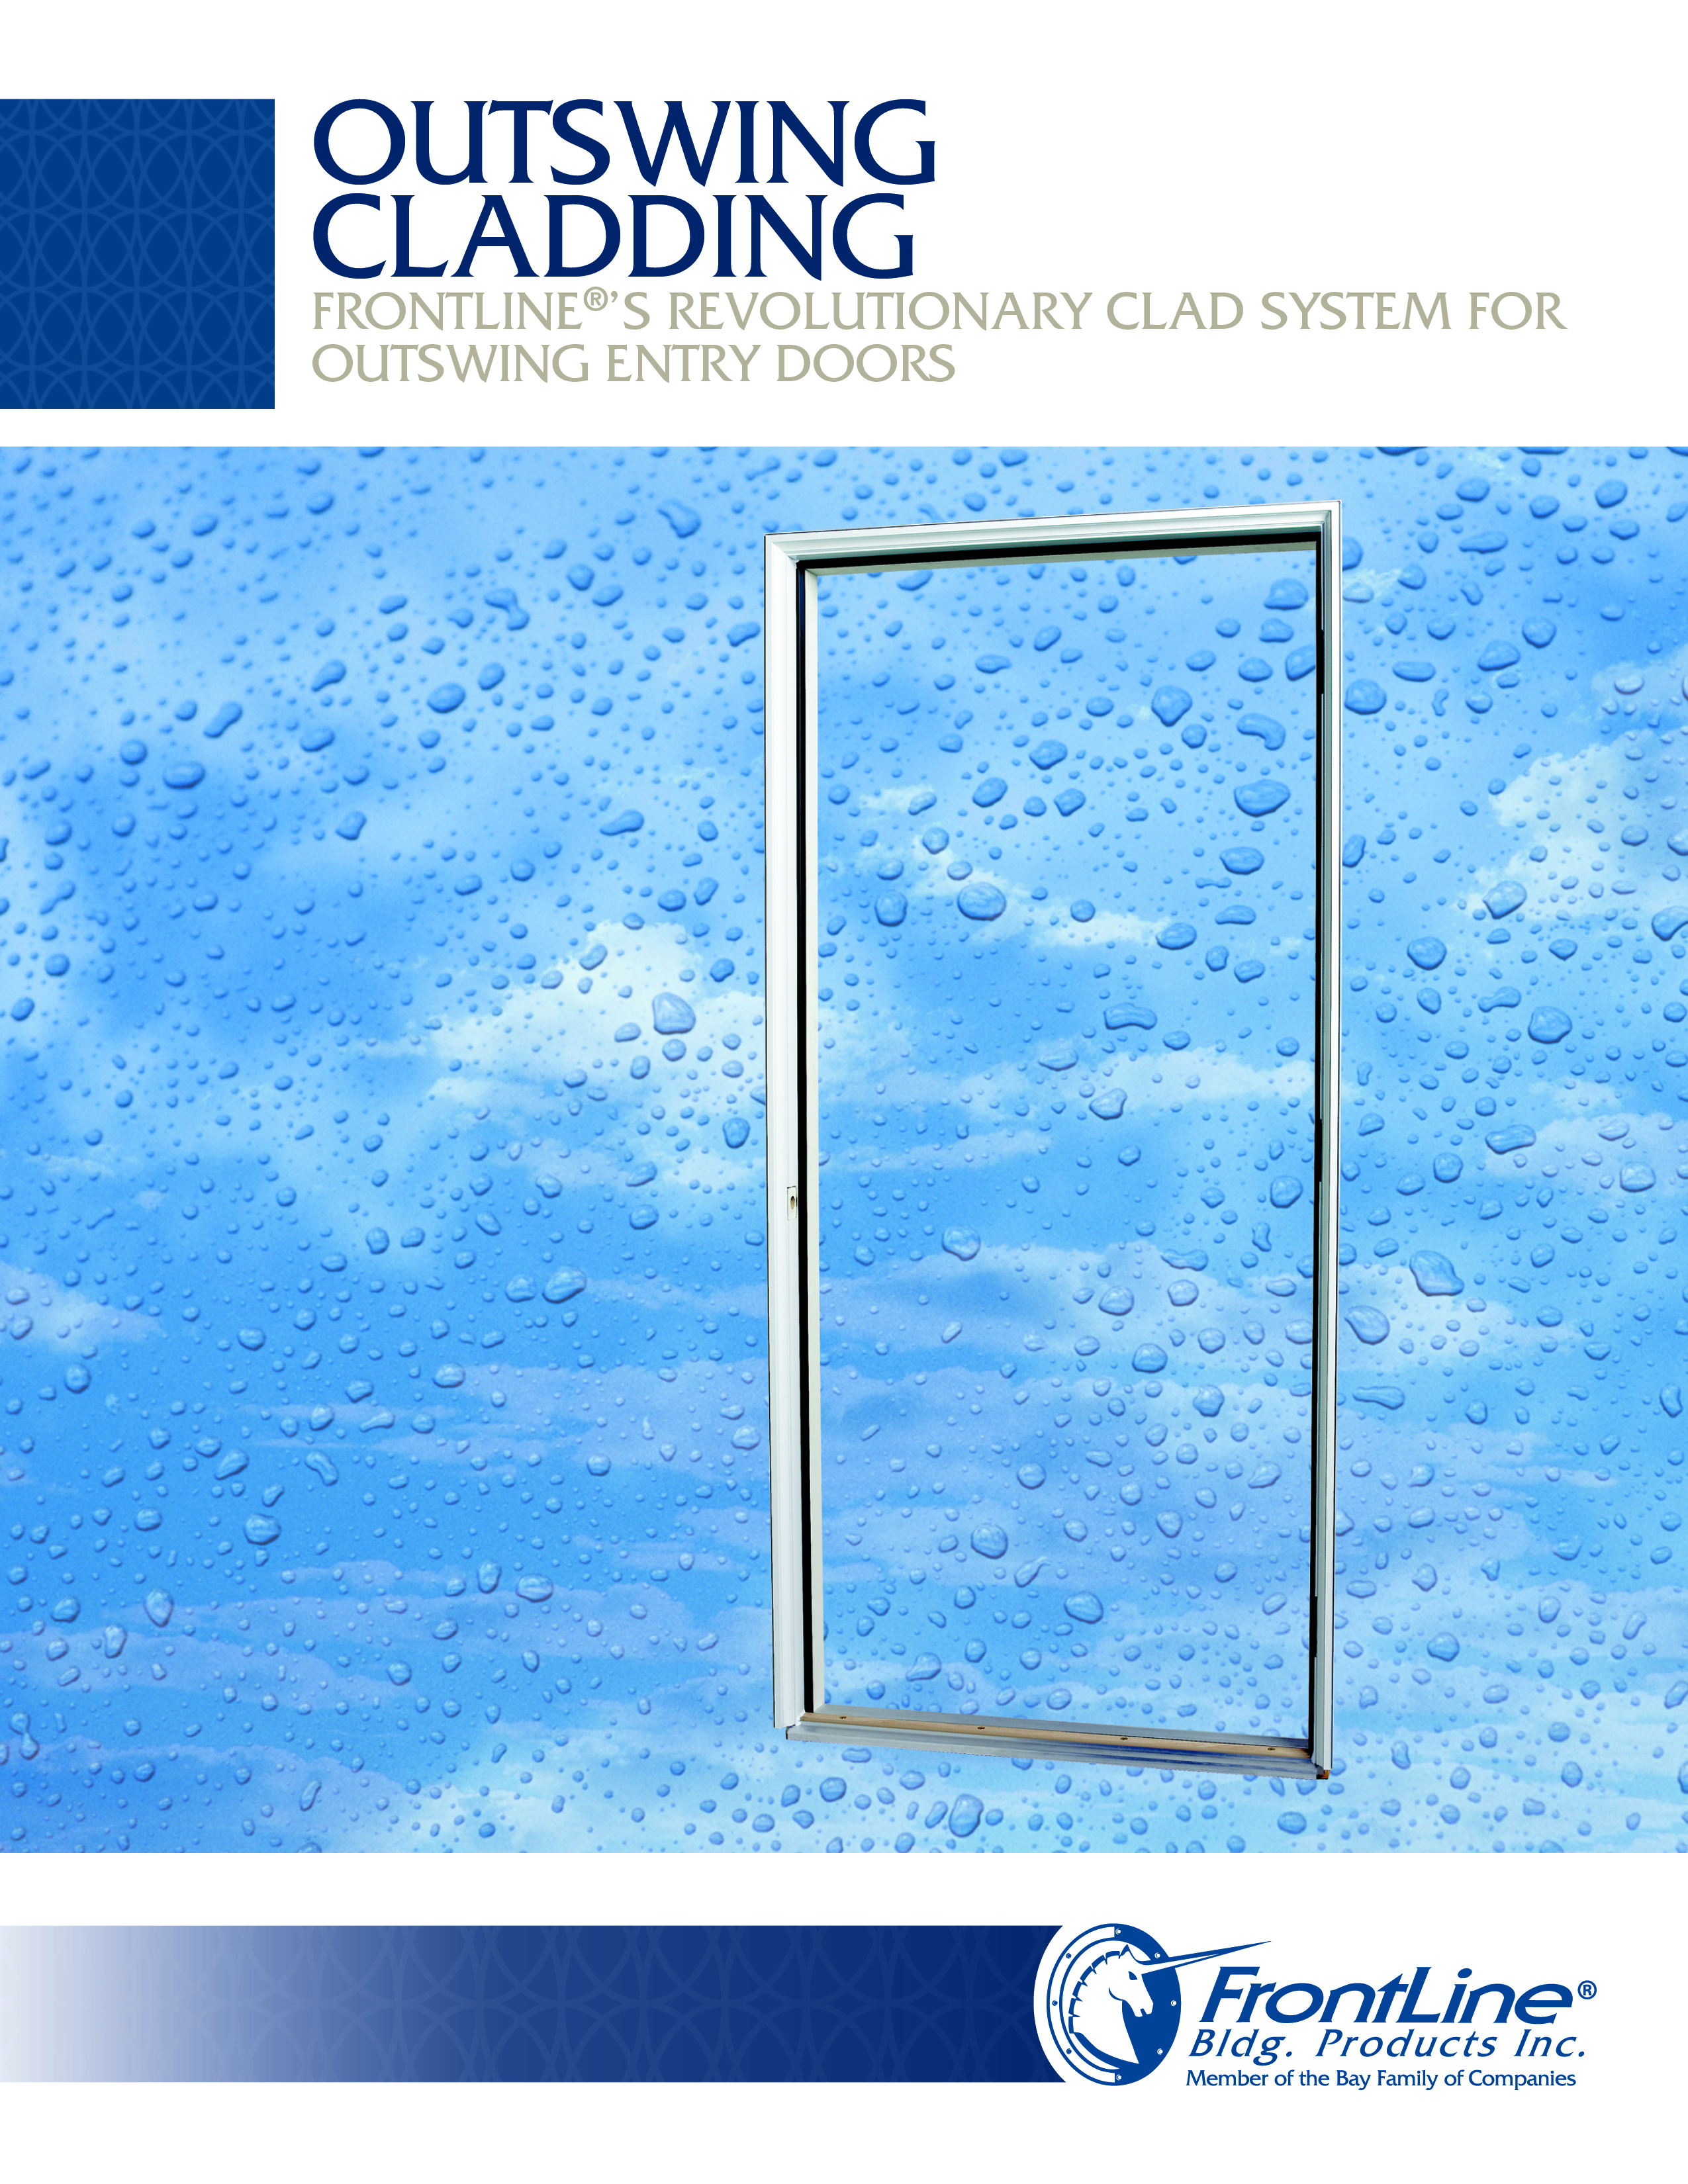 Outswing Cladding Sell Sheet